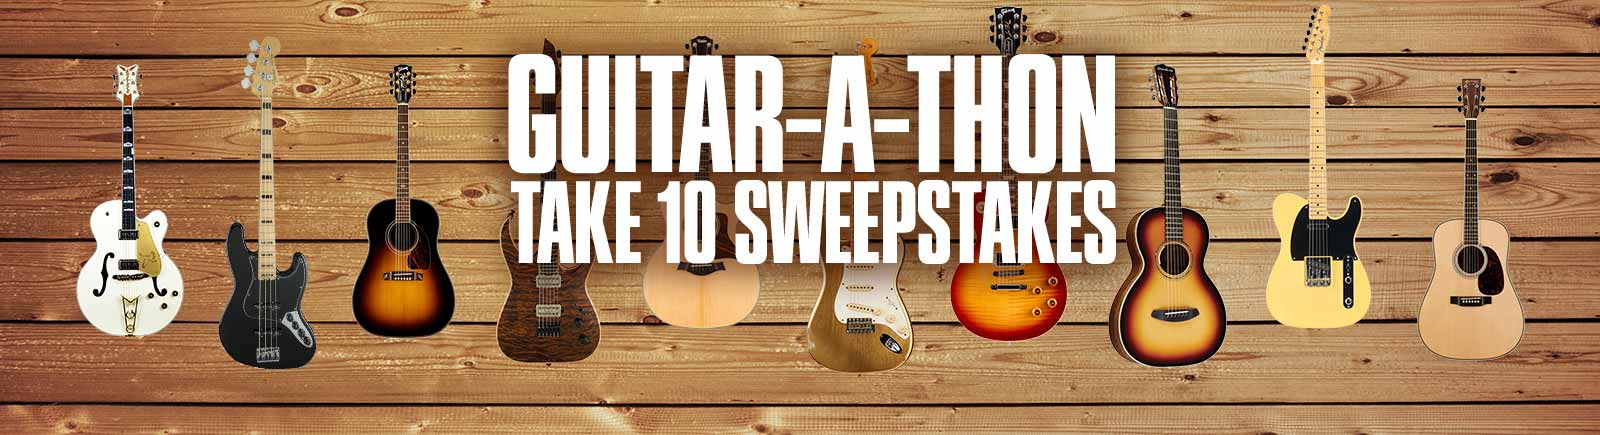 Online Guitar-A-Thon Sweeps